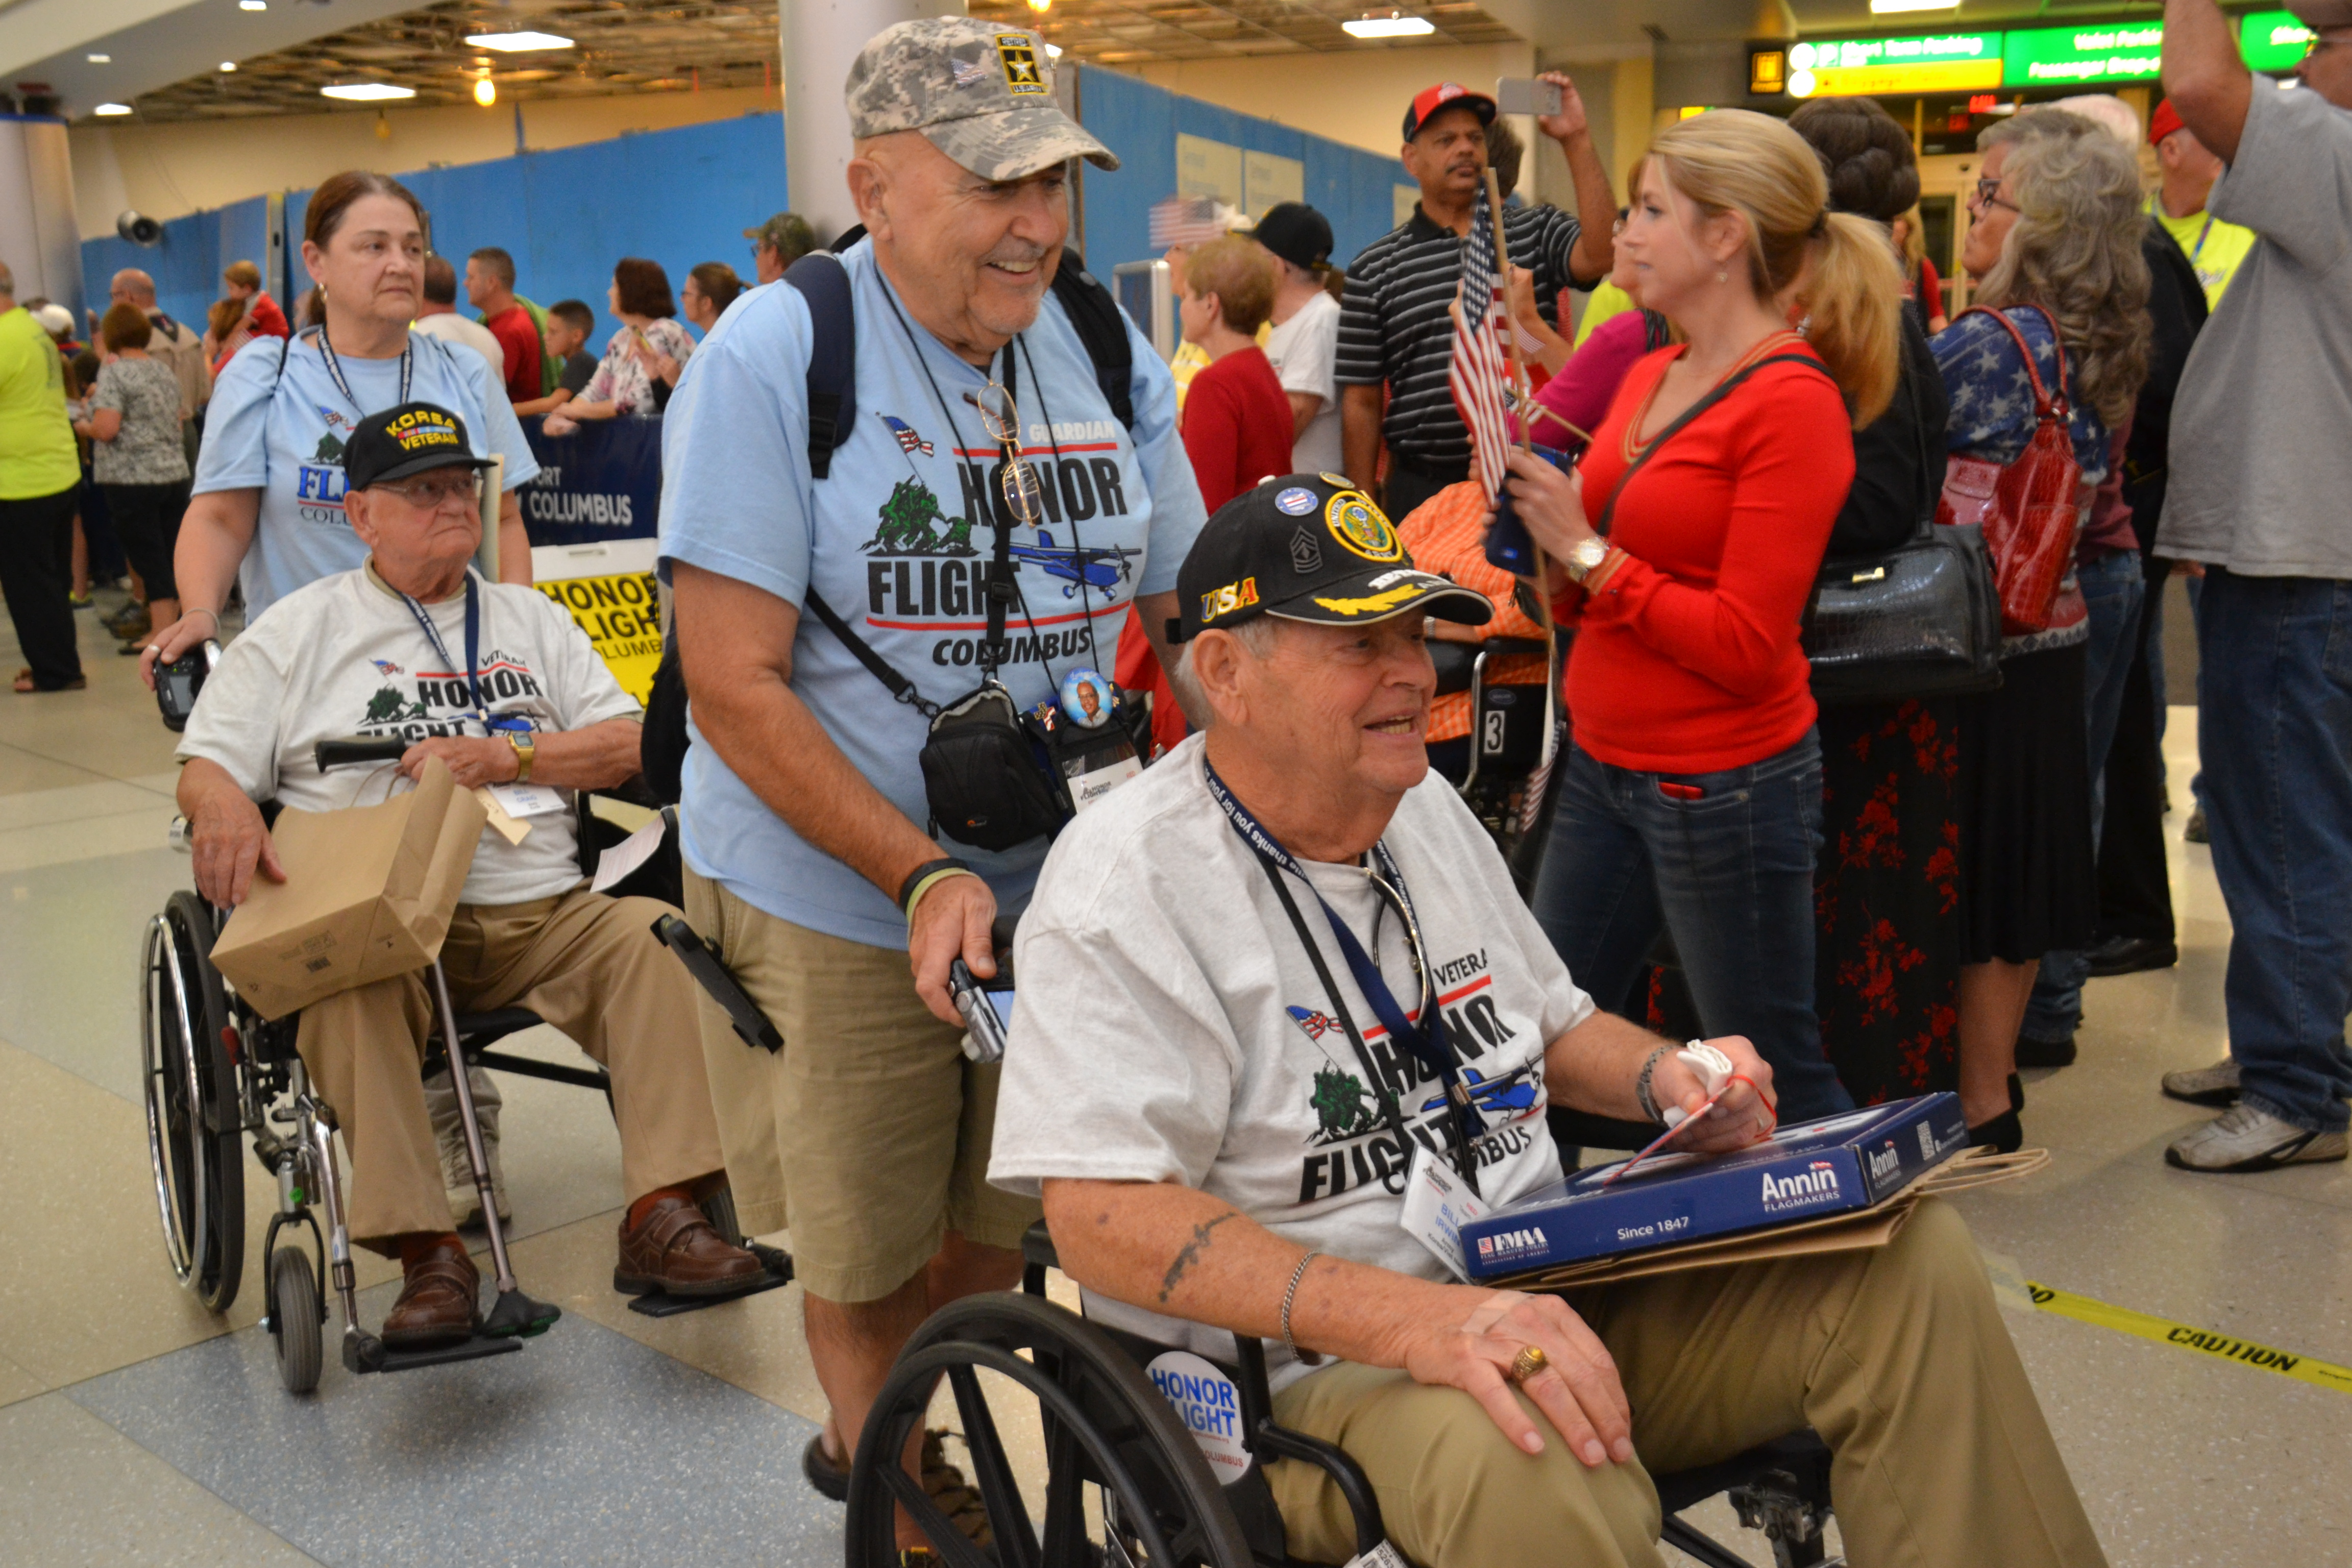 Veterans Return from Washington D.C. to a Much Deserved Hero's Welcome Home